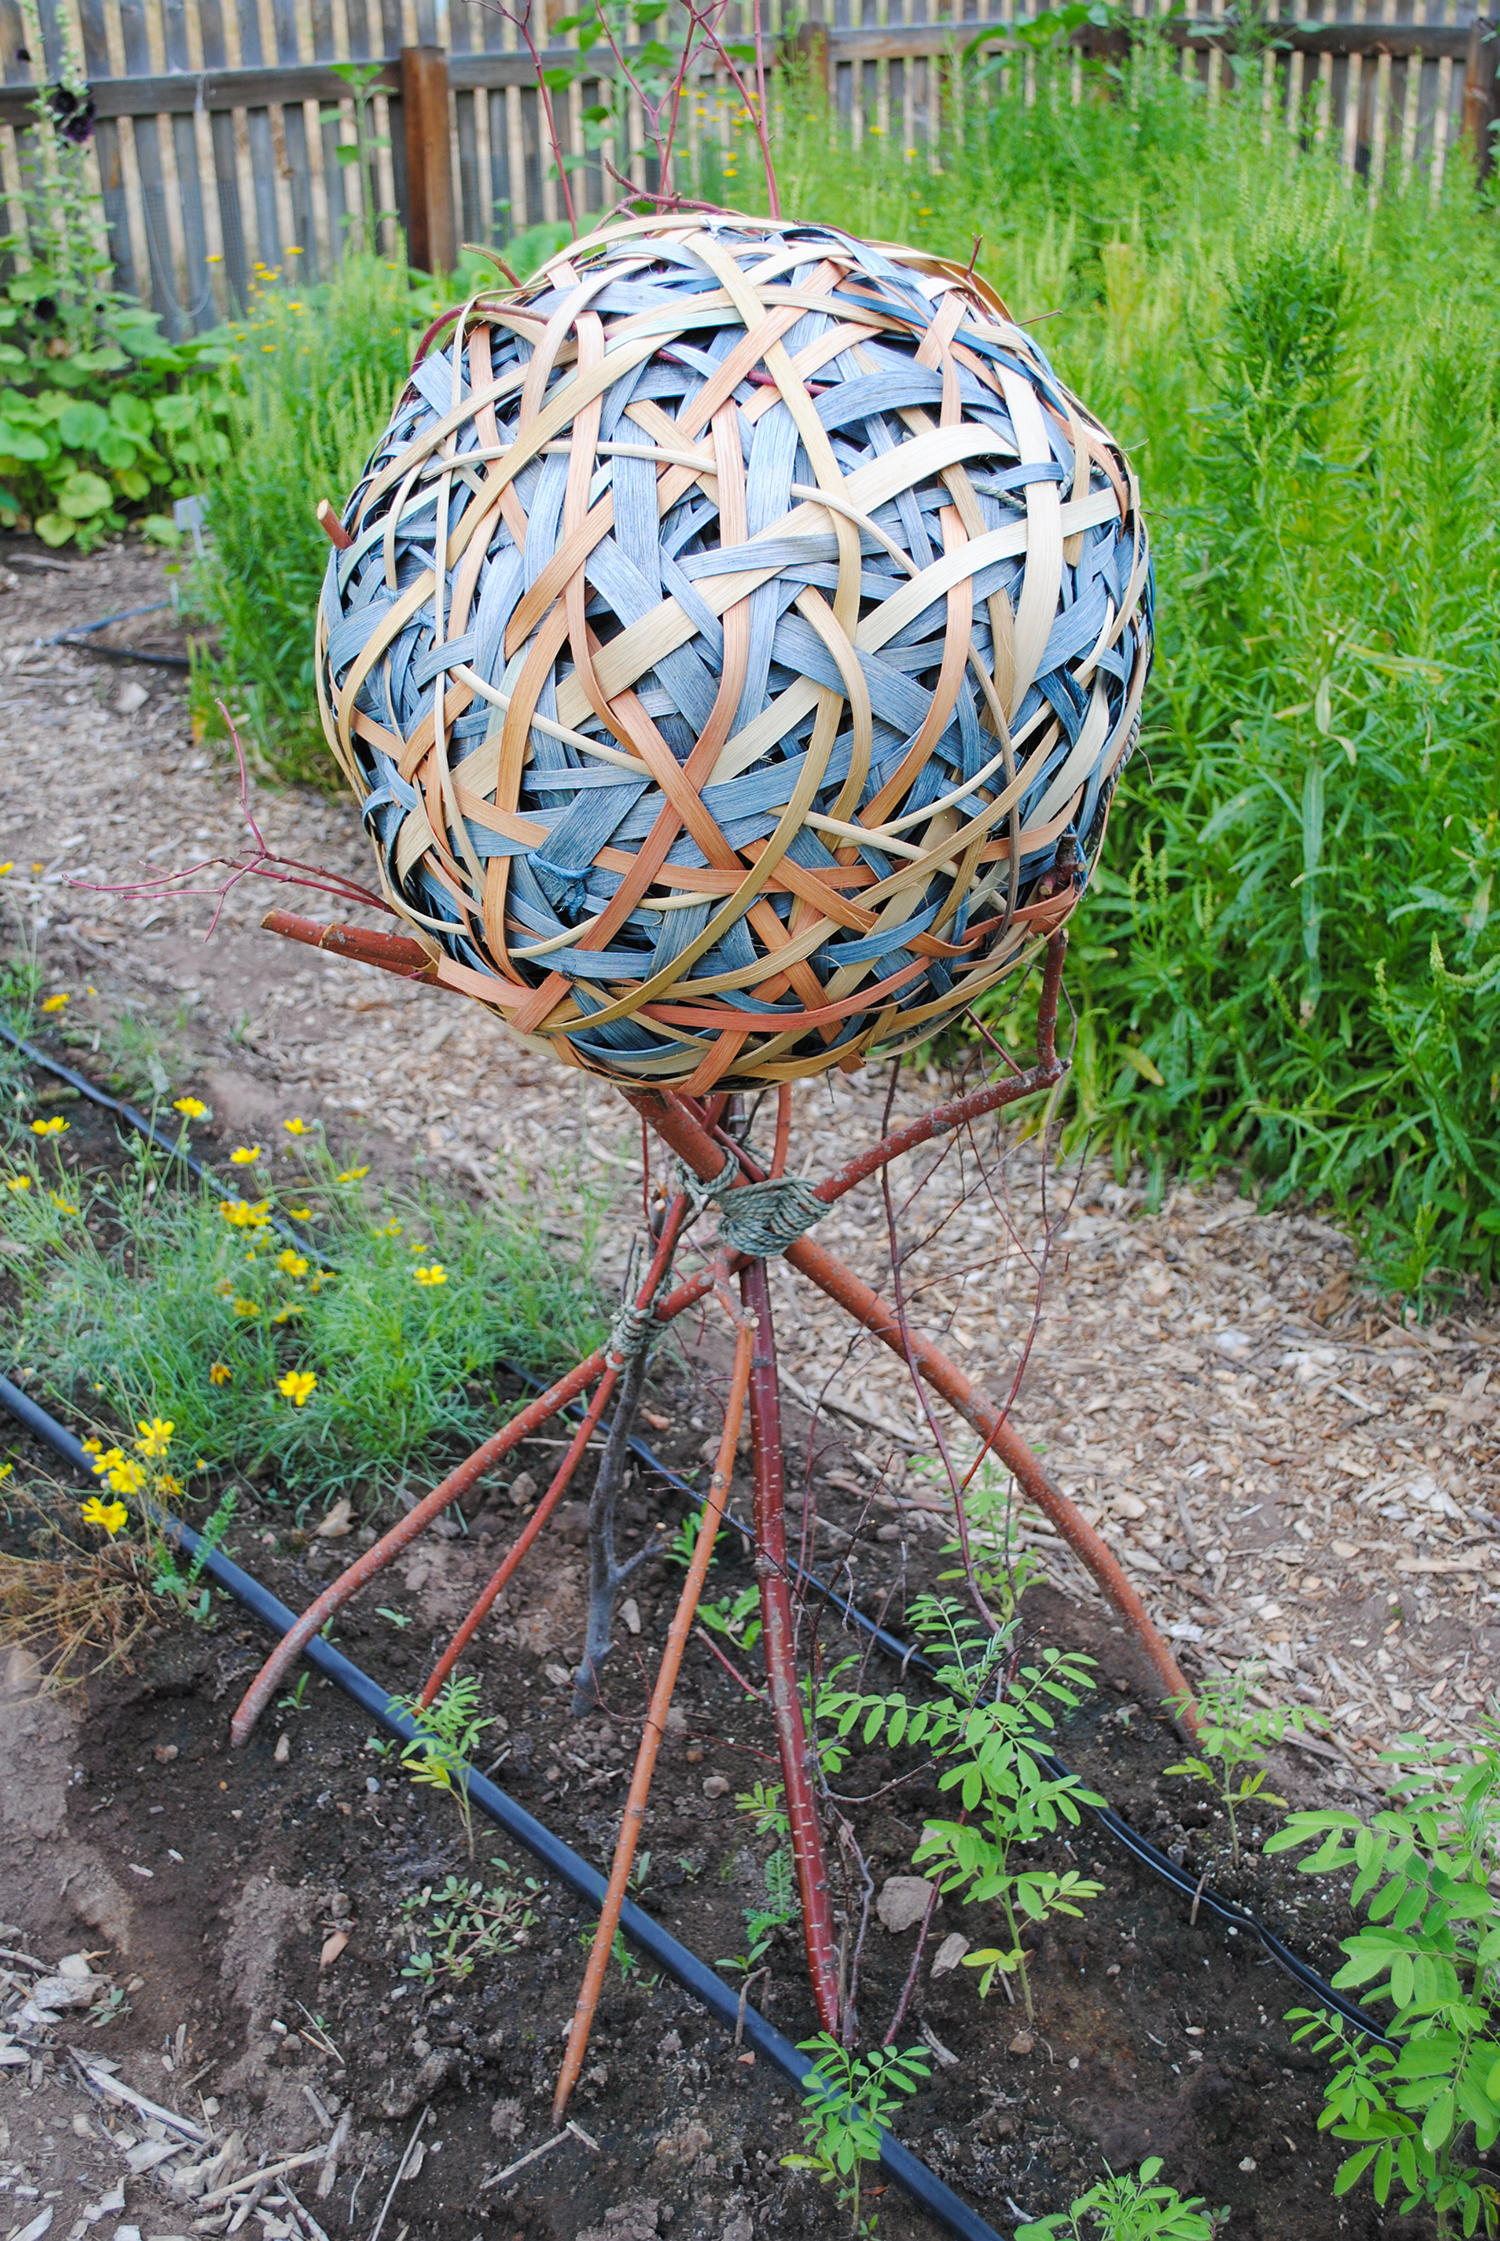 A sphere made from dyed strips of wood demonstrates that the craft isn't just limited to cloth.